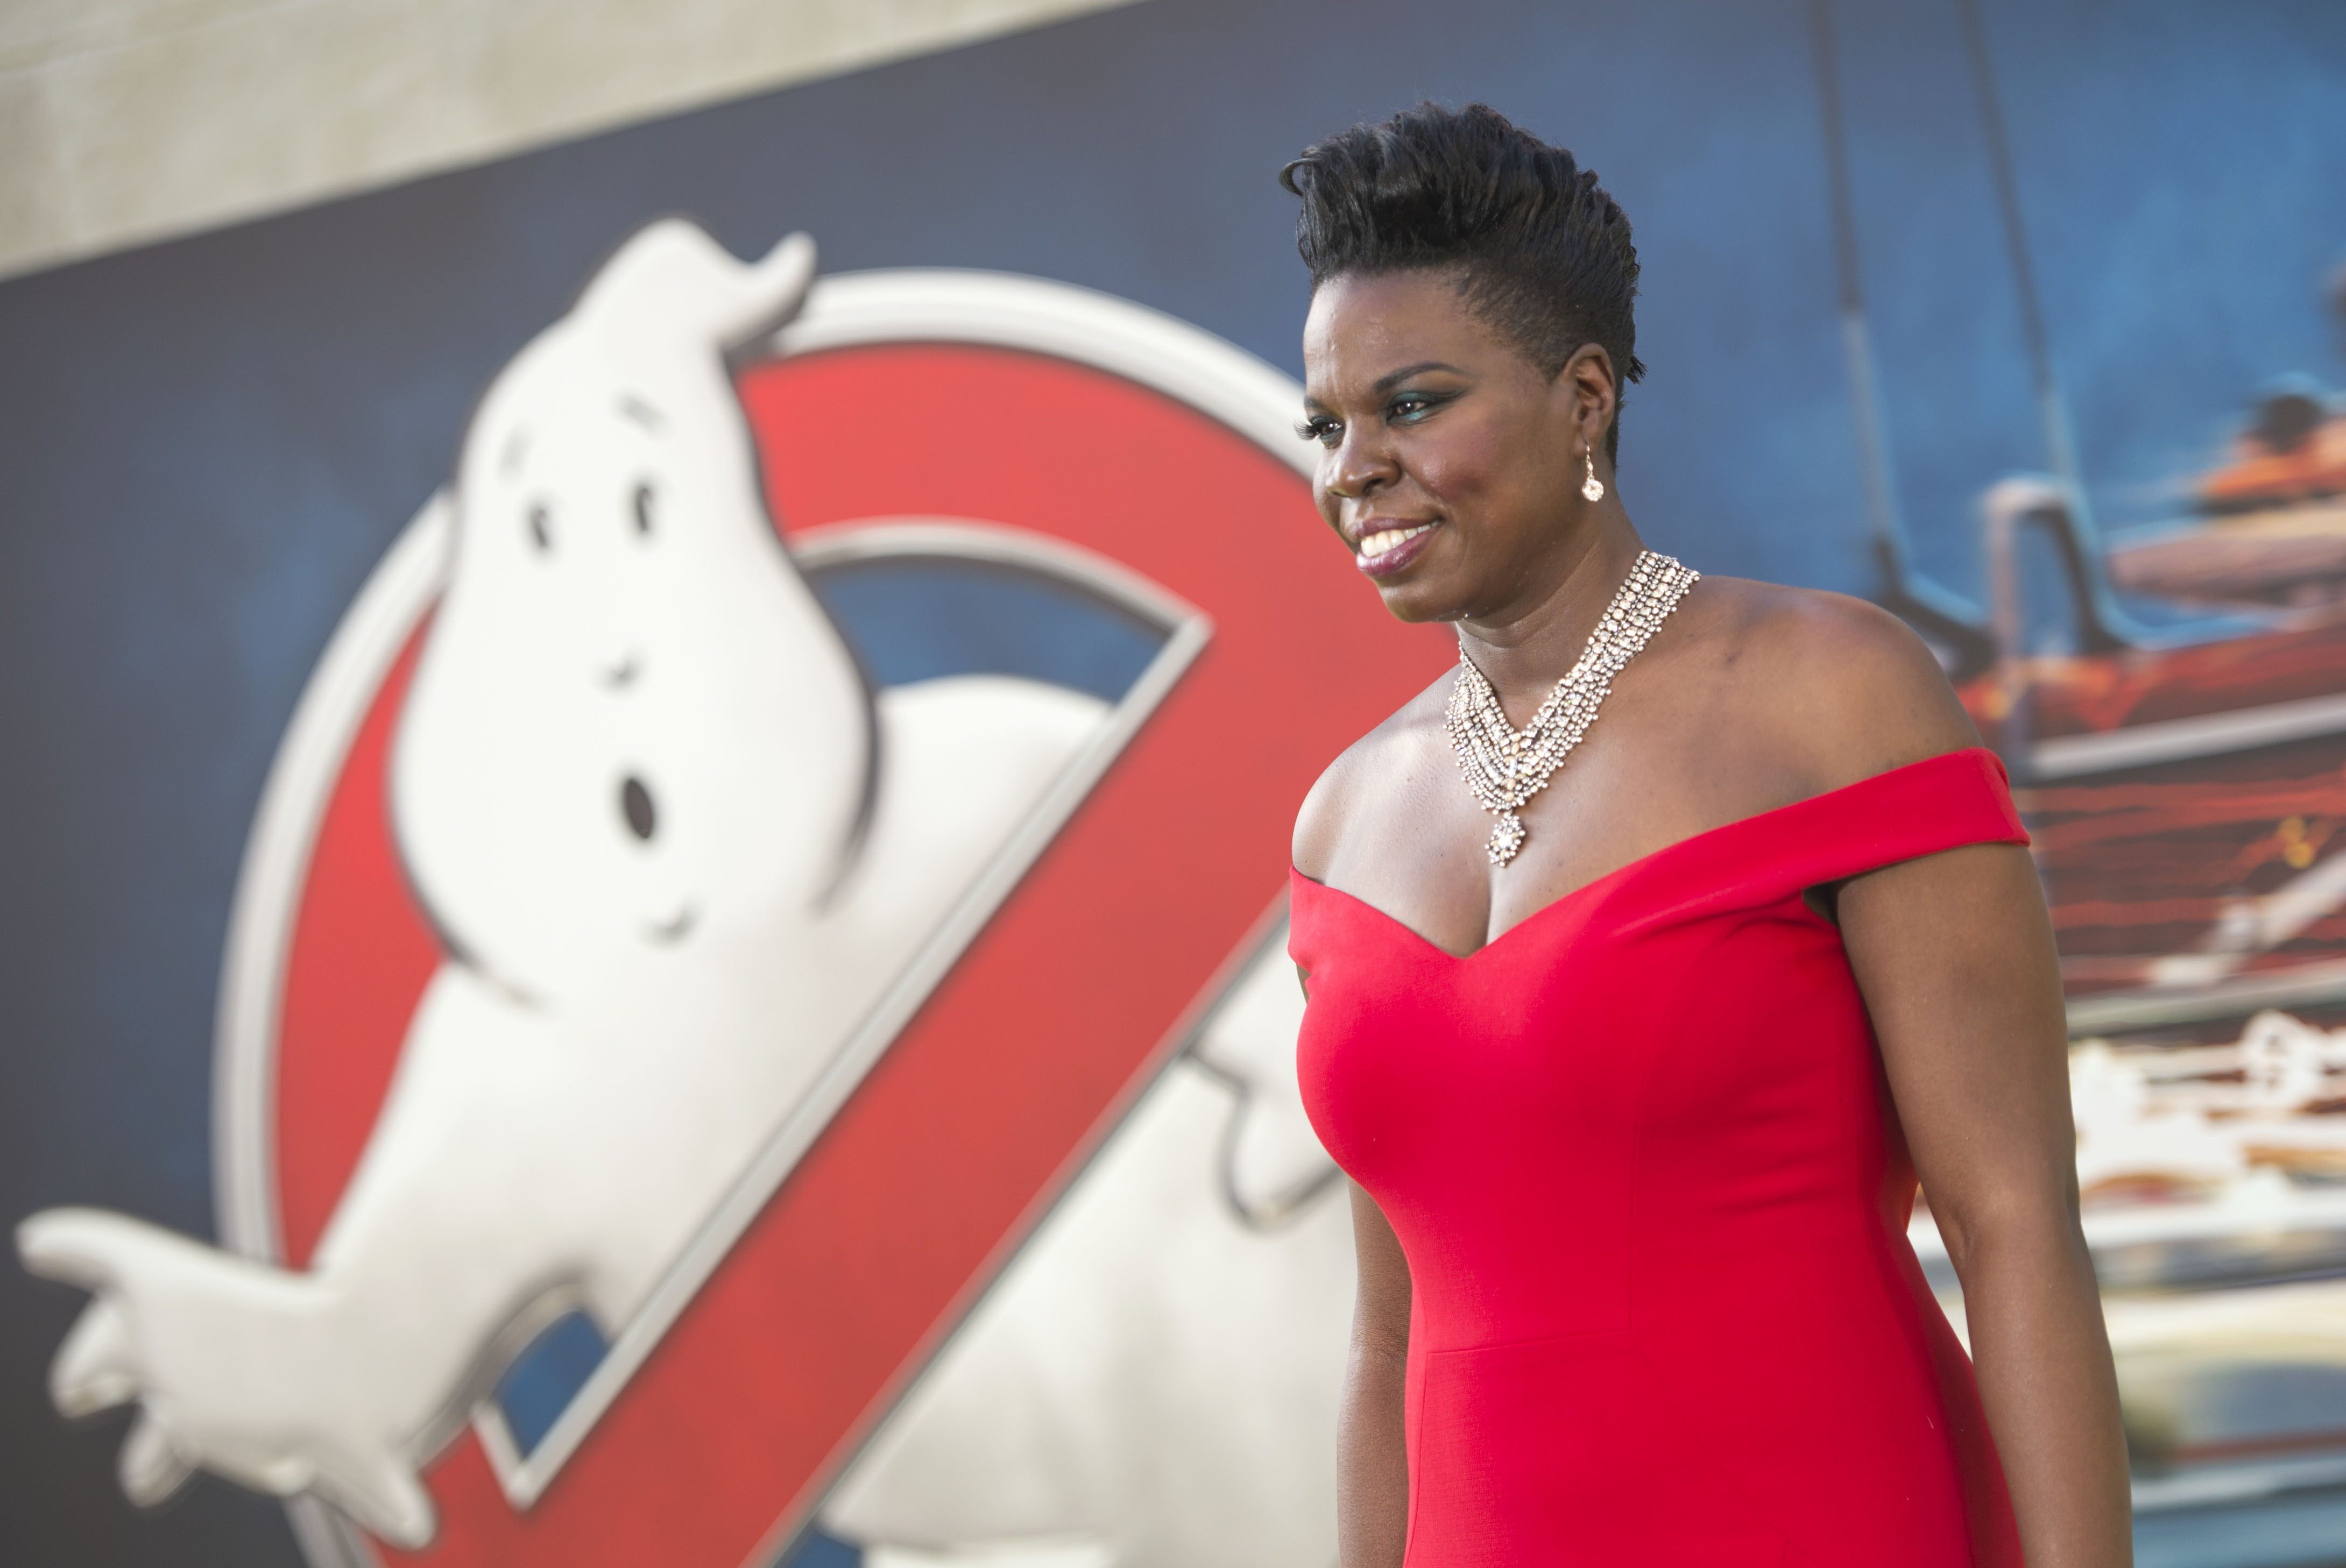 US-ENTERTAINMENT-FILM-GHOSTBUSTERS